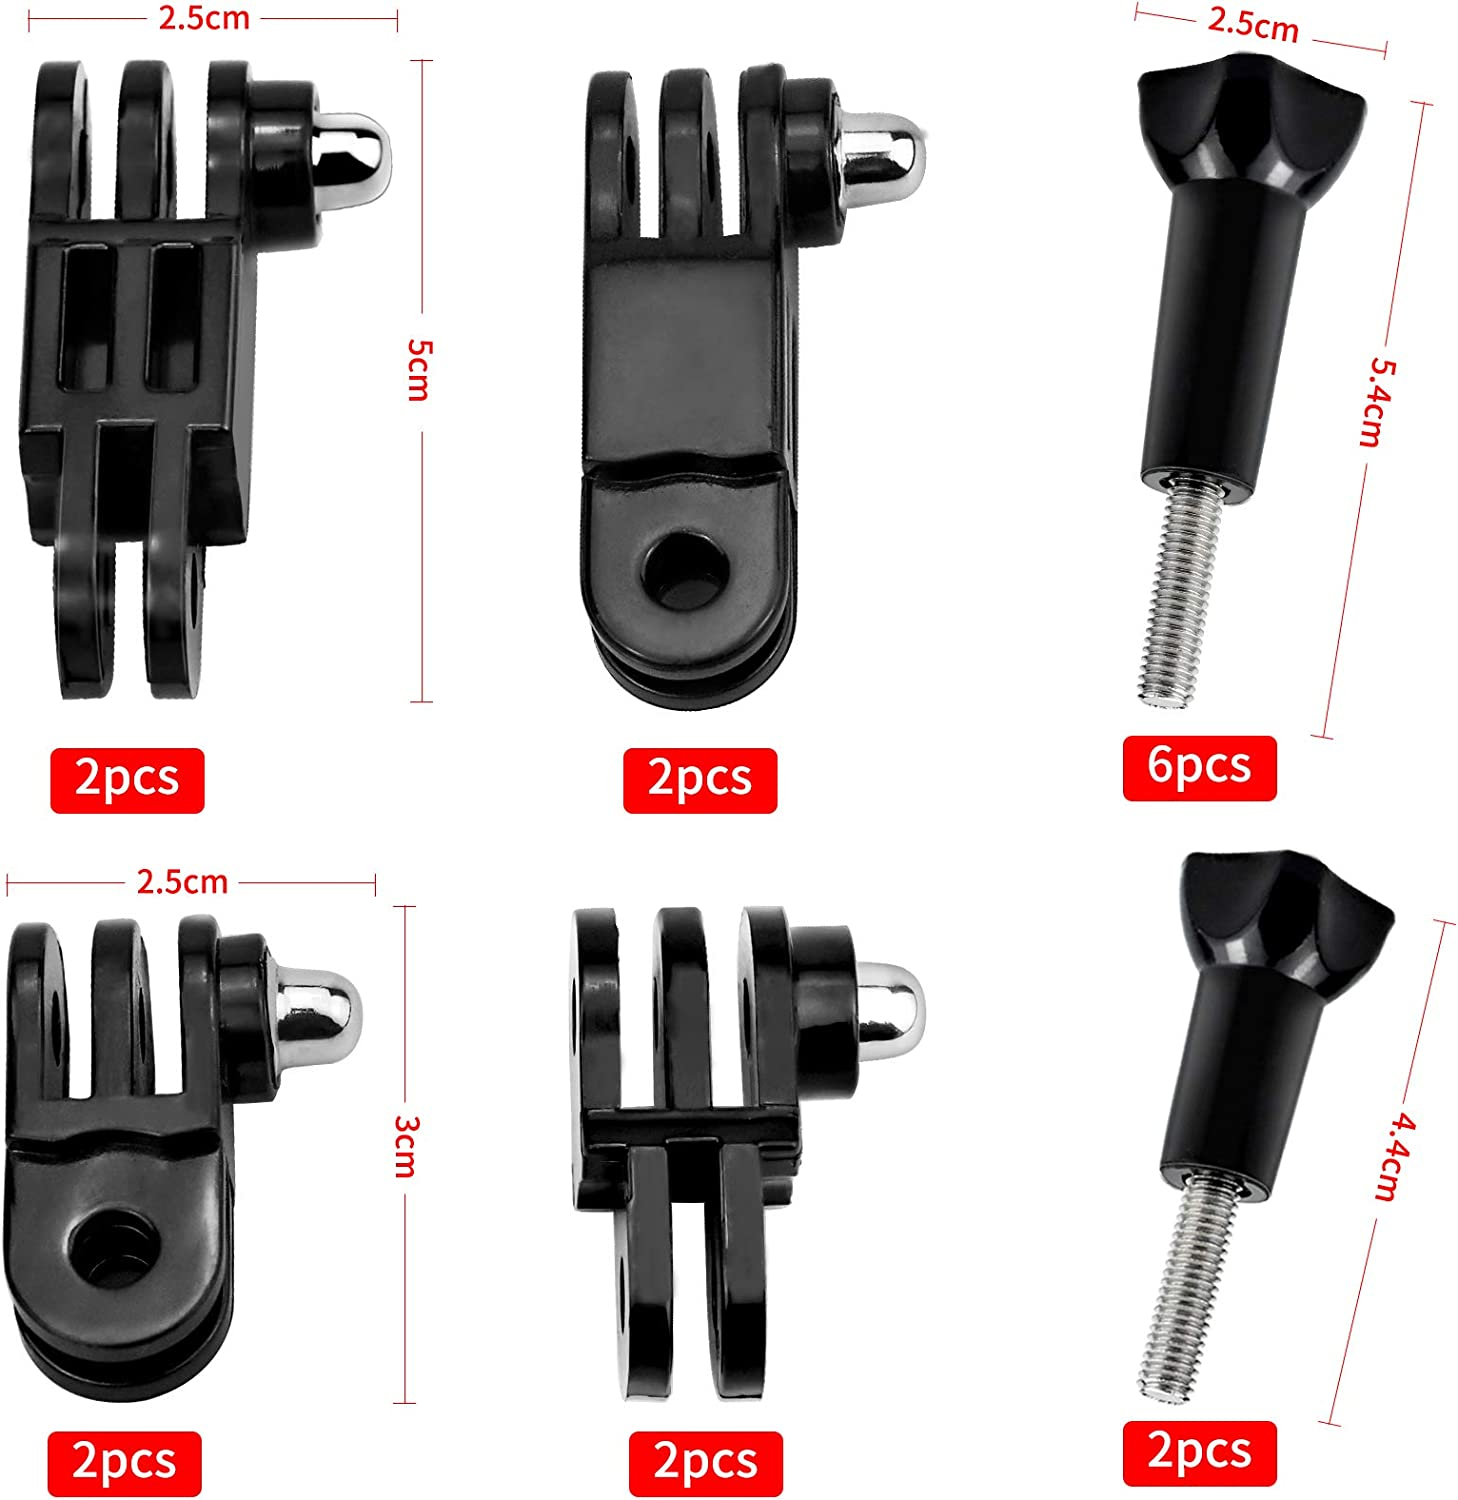 16 PCS 3 Way Mount Extension Arm Set for GoPro 3 in 1 Adjustable Pivot Arm Extension Thumb Knob Buckle Clip Basic Mount Extension Kit for SJCAM Hero Sports Camera